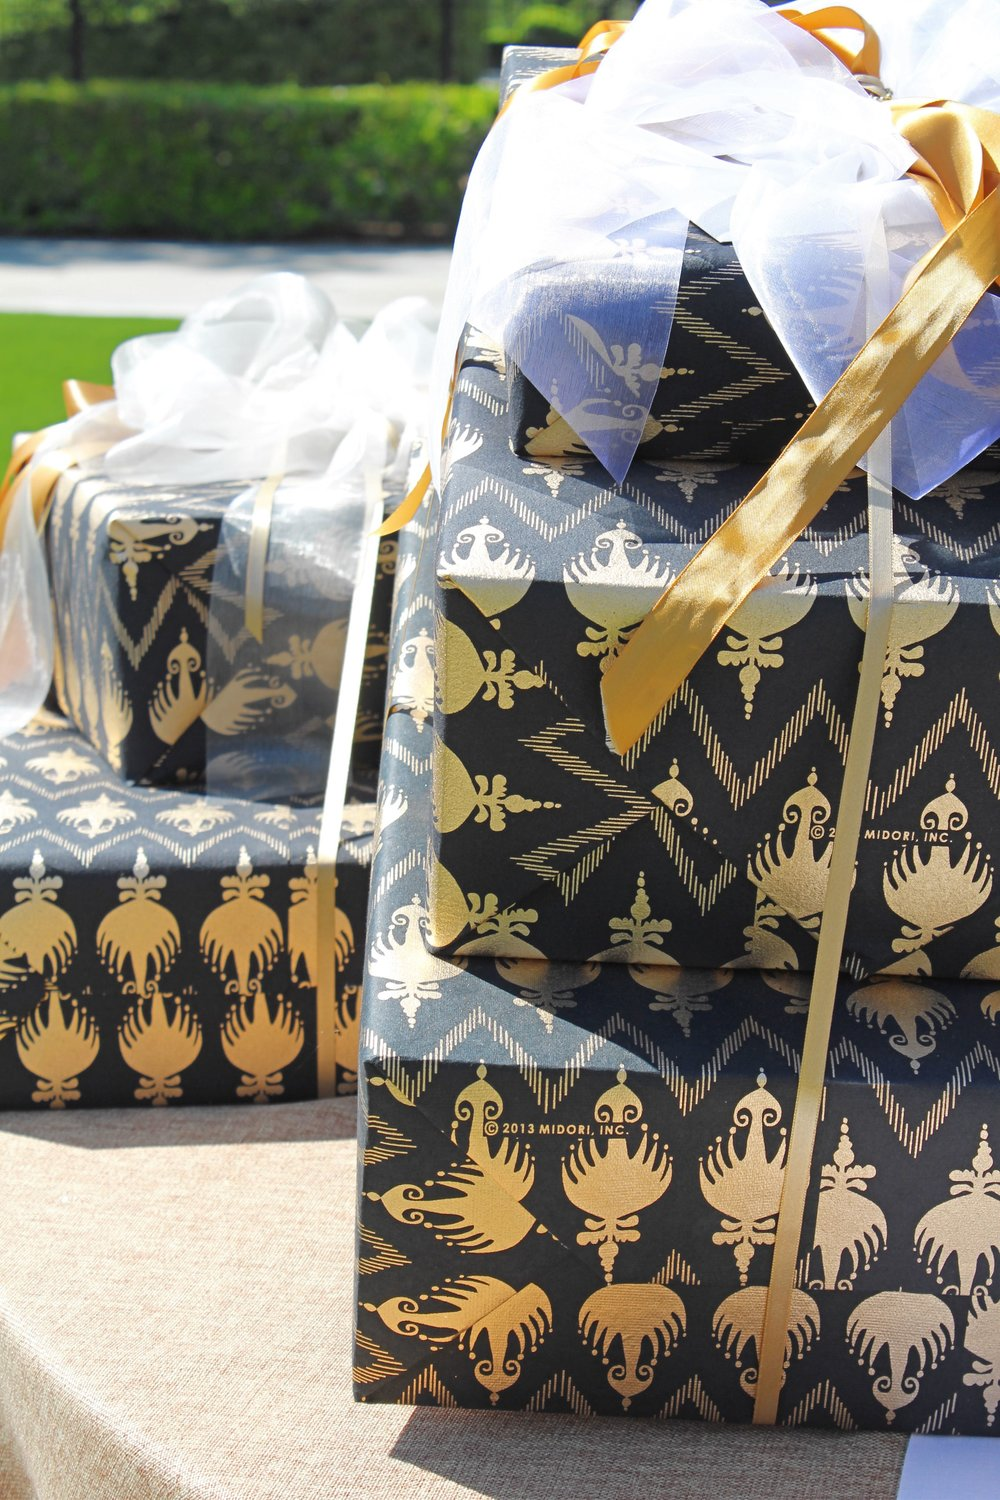 Rsvp style gift wrap black and gold.jpg